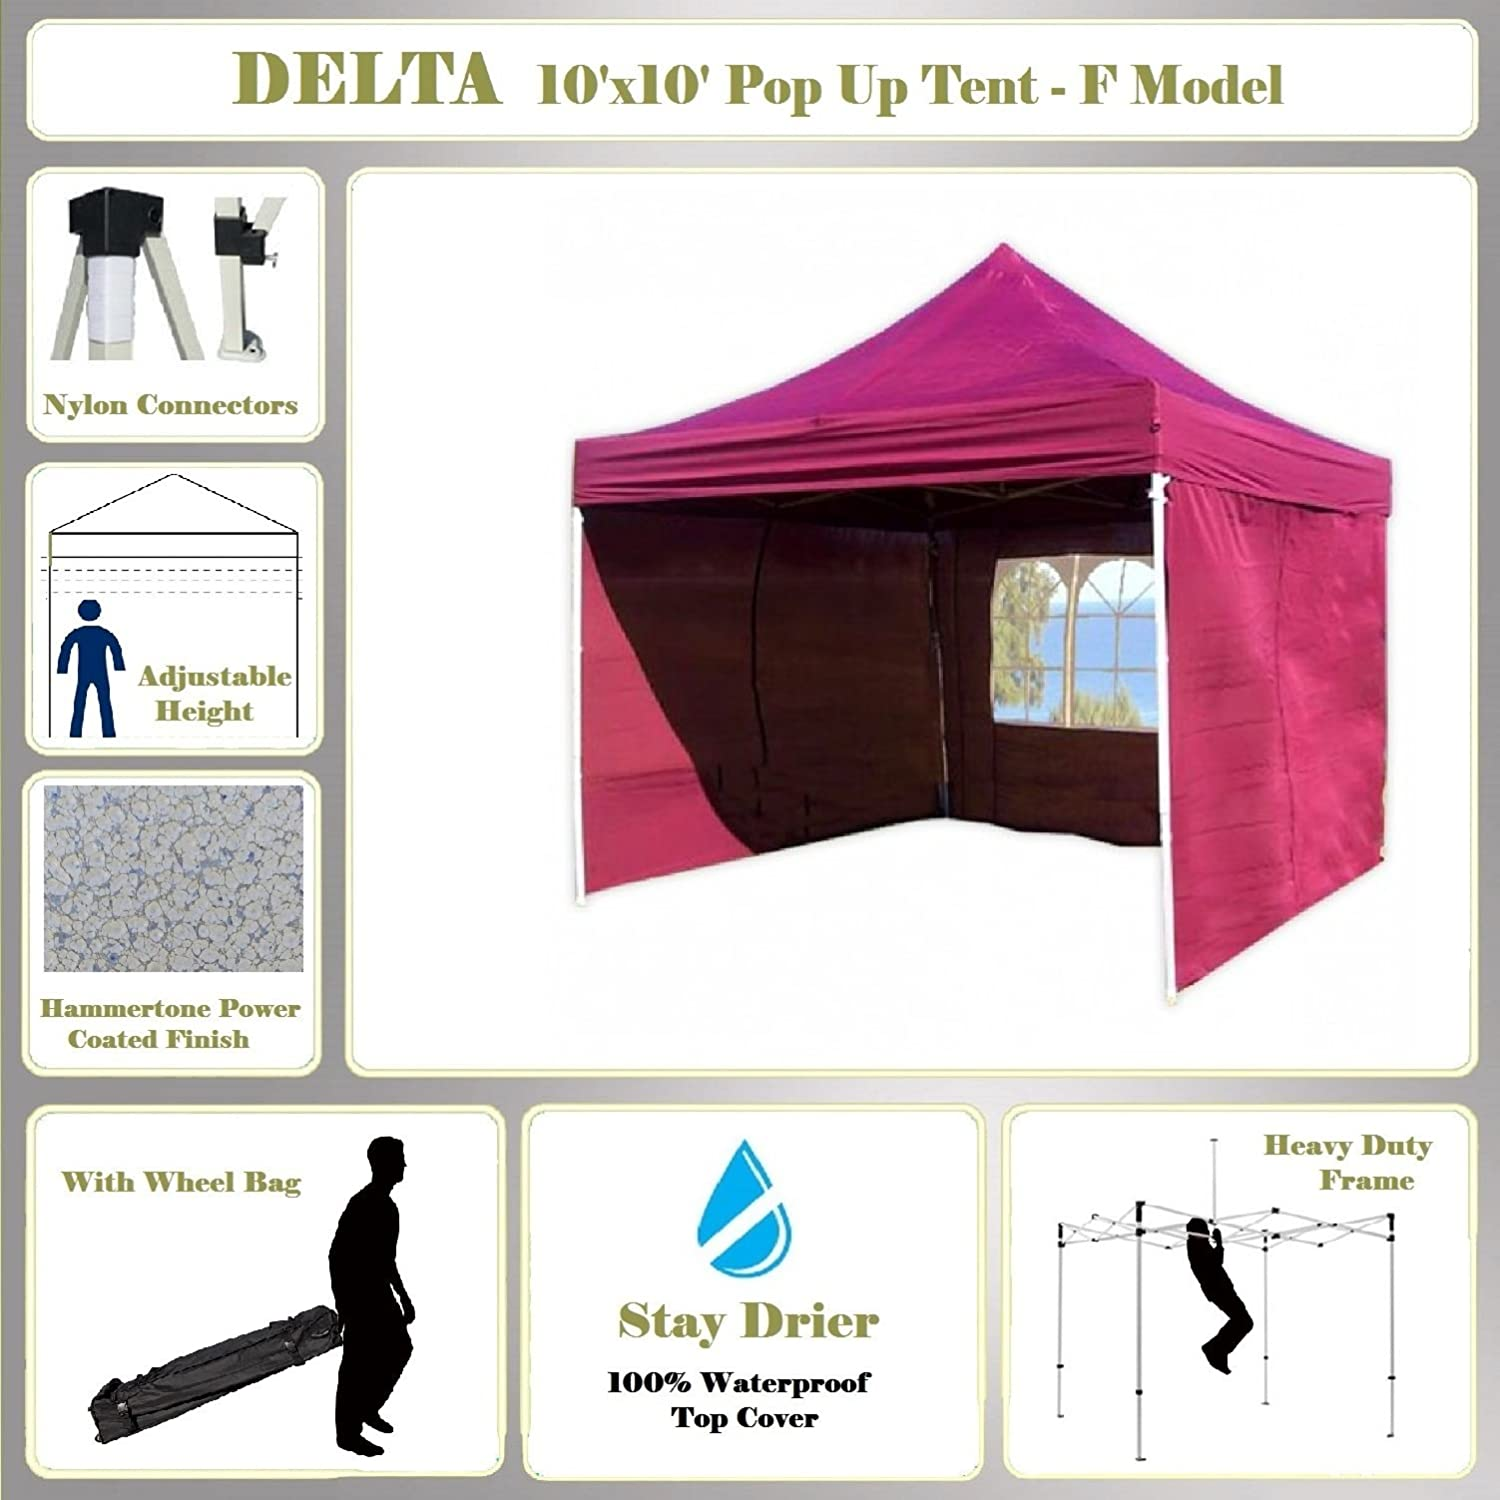 Amazon.com 10u0027x10u0027 Pop up Canopy Wedding Party Tent Gazebo EZ Maroon - F Model Commercial Frame By DELTA Canopies Garden u0026 Outdoor  sc 1 st  Amazon.com & Amazon.com: 10u0027x10u0027 Pop up Canopy Wedding Party Tent Gazebo EZ ...